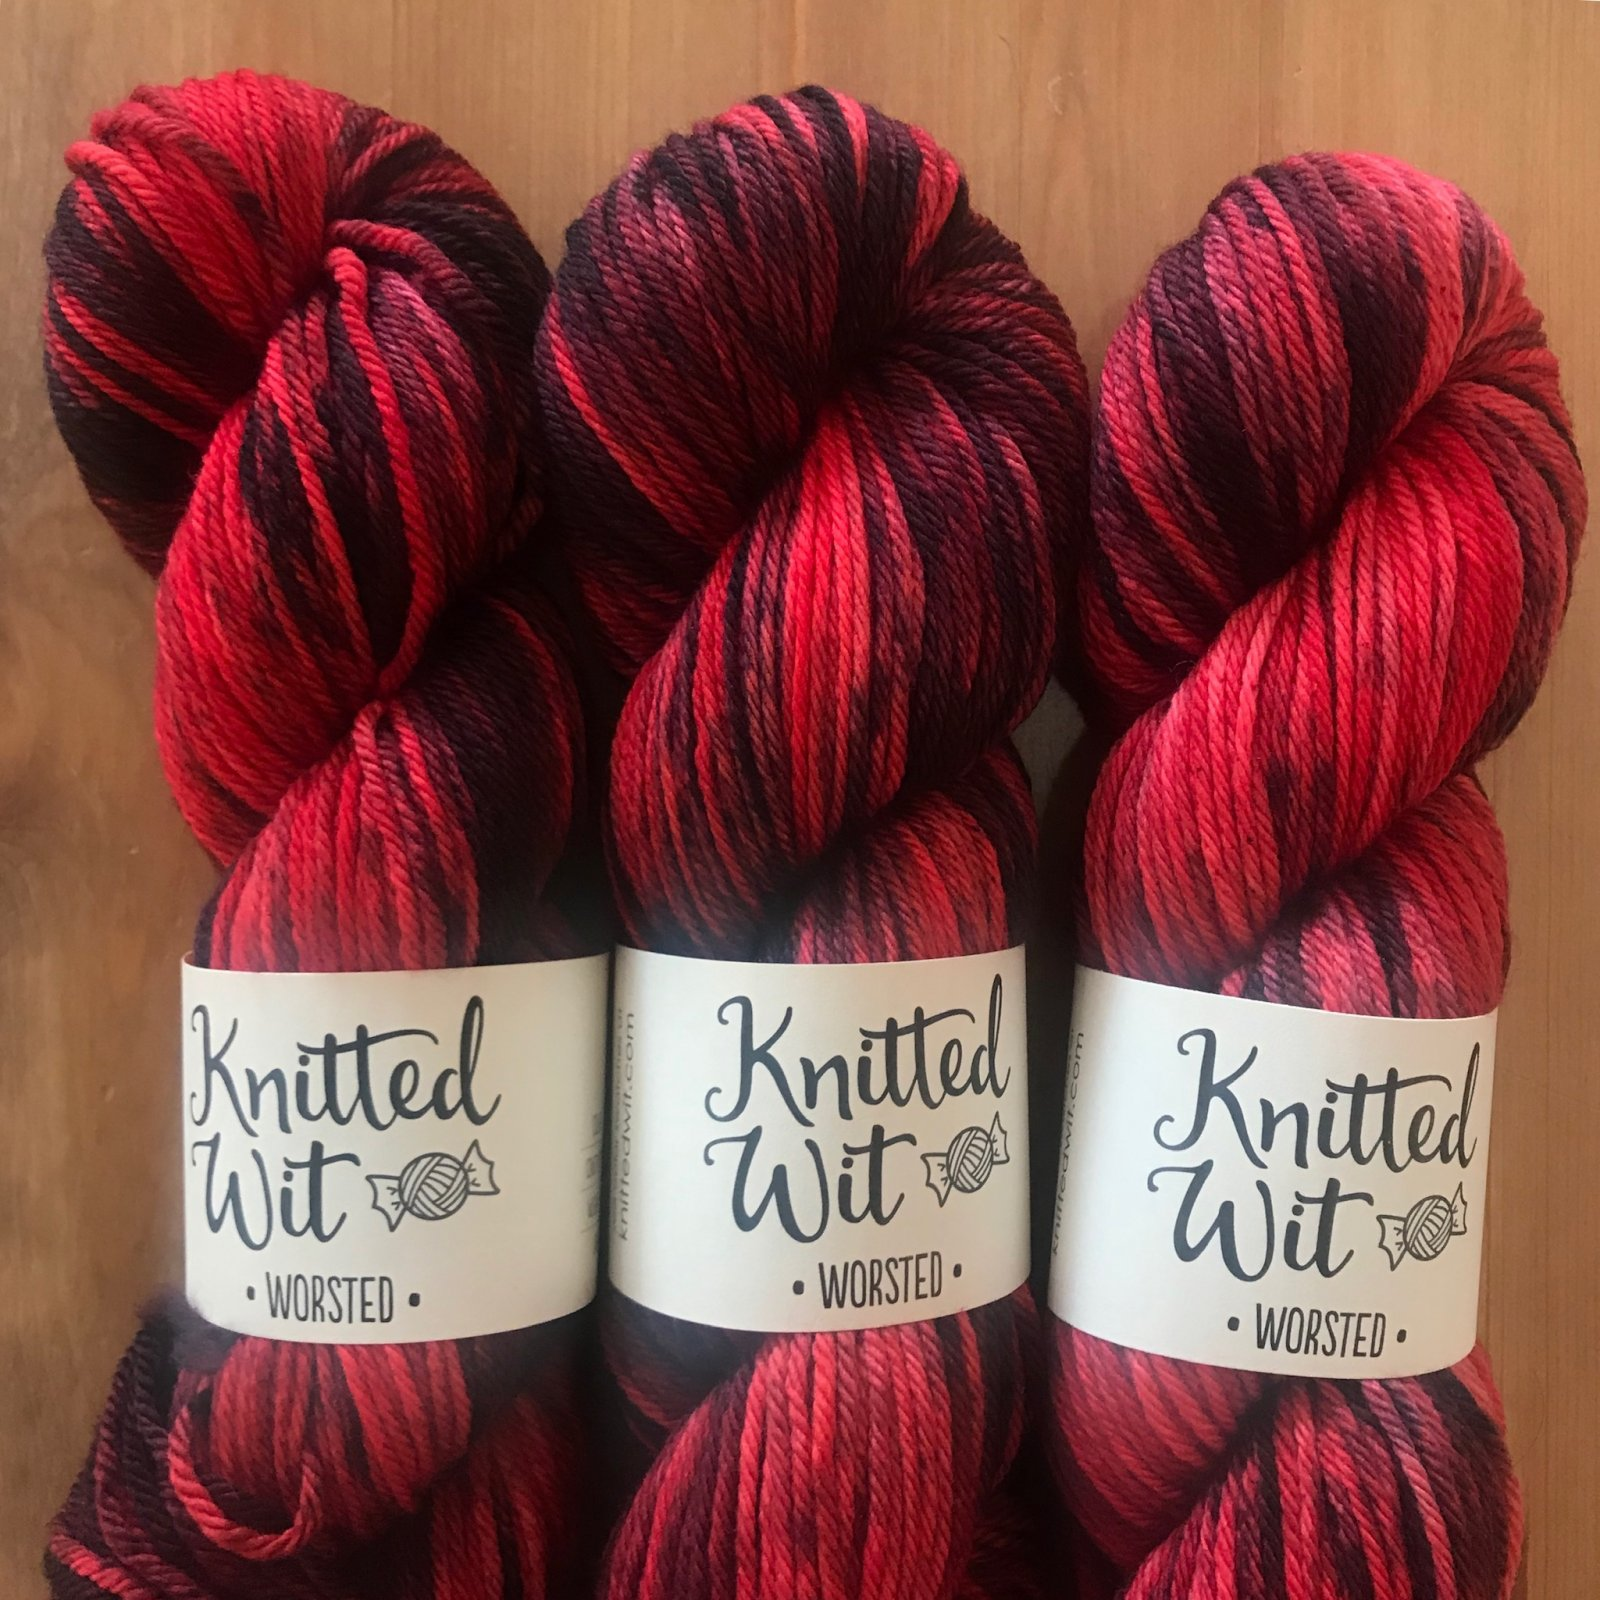 KW Worsted in Ember Eye